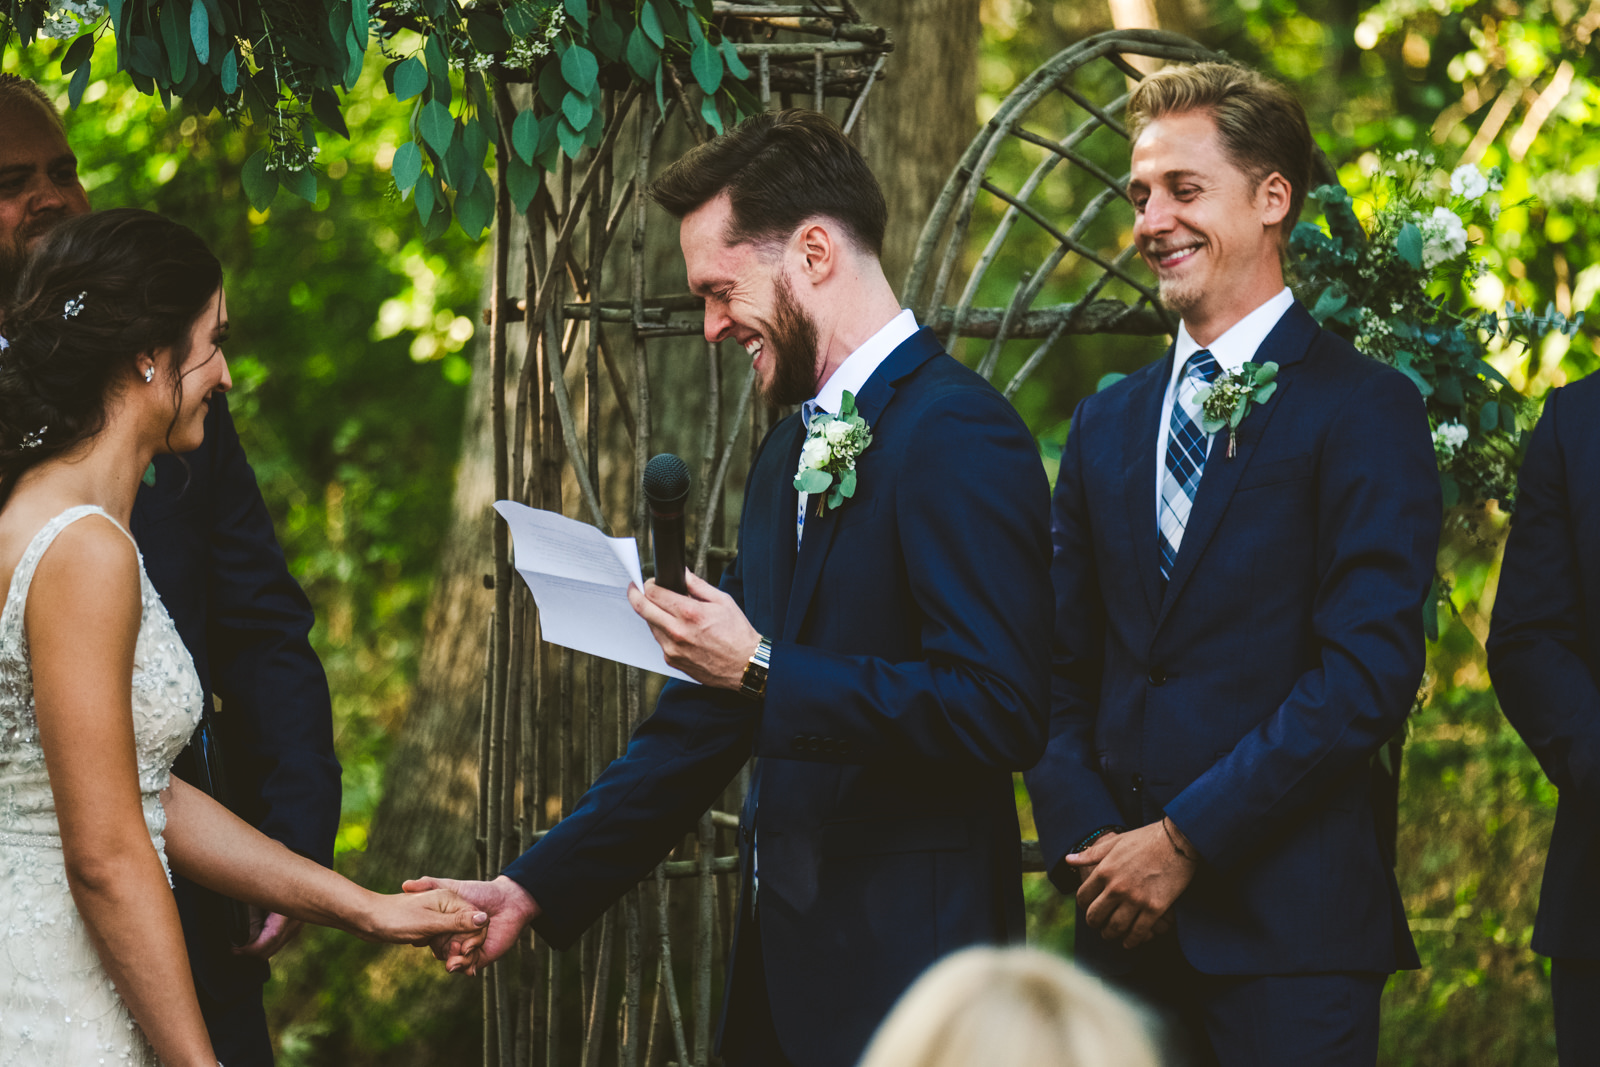 Groom Cries at Ceremony with Toledo Ohio Wedding Photographers in Wisconsin for Destination Wedding